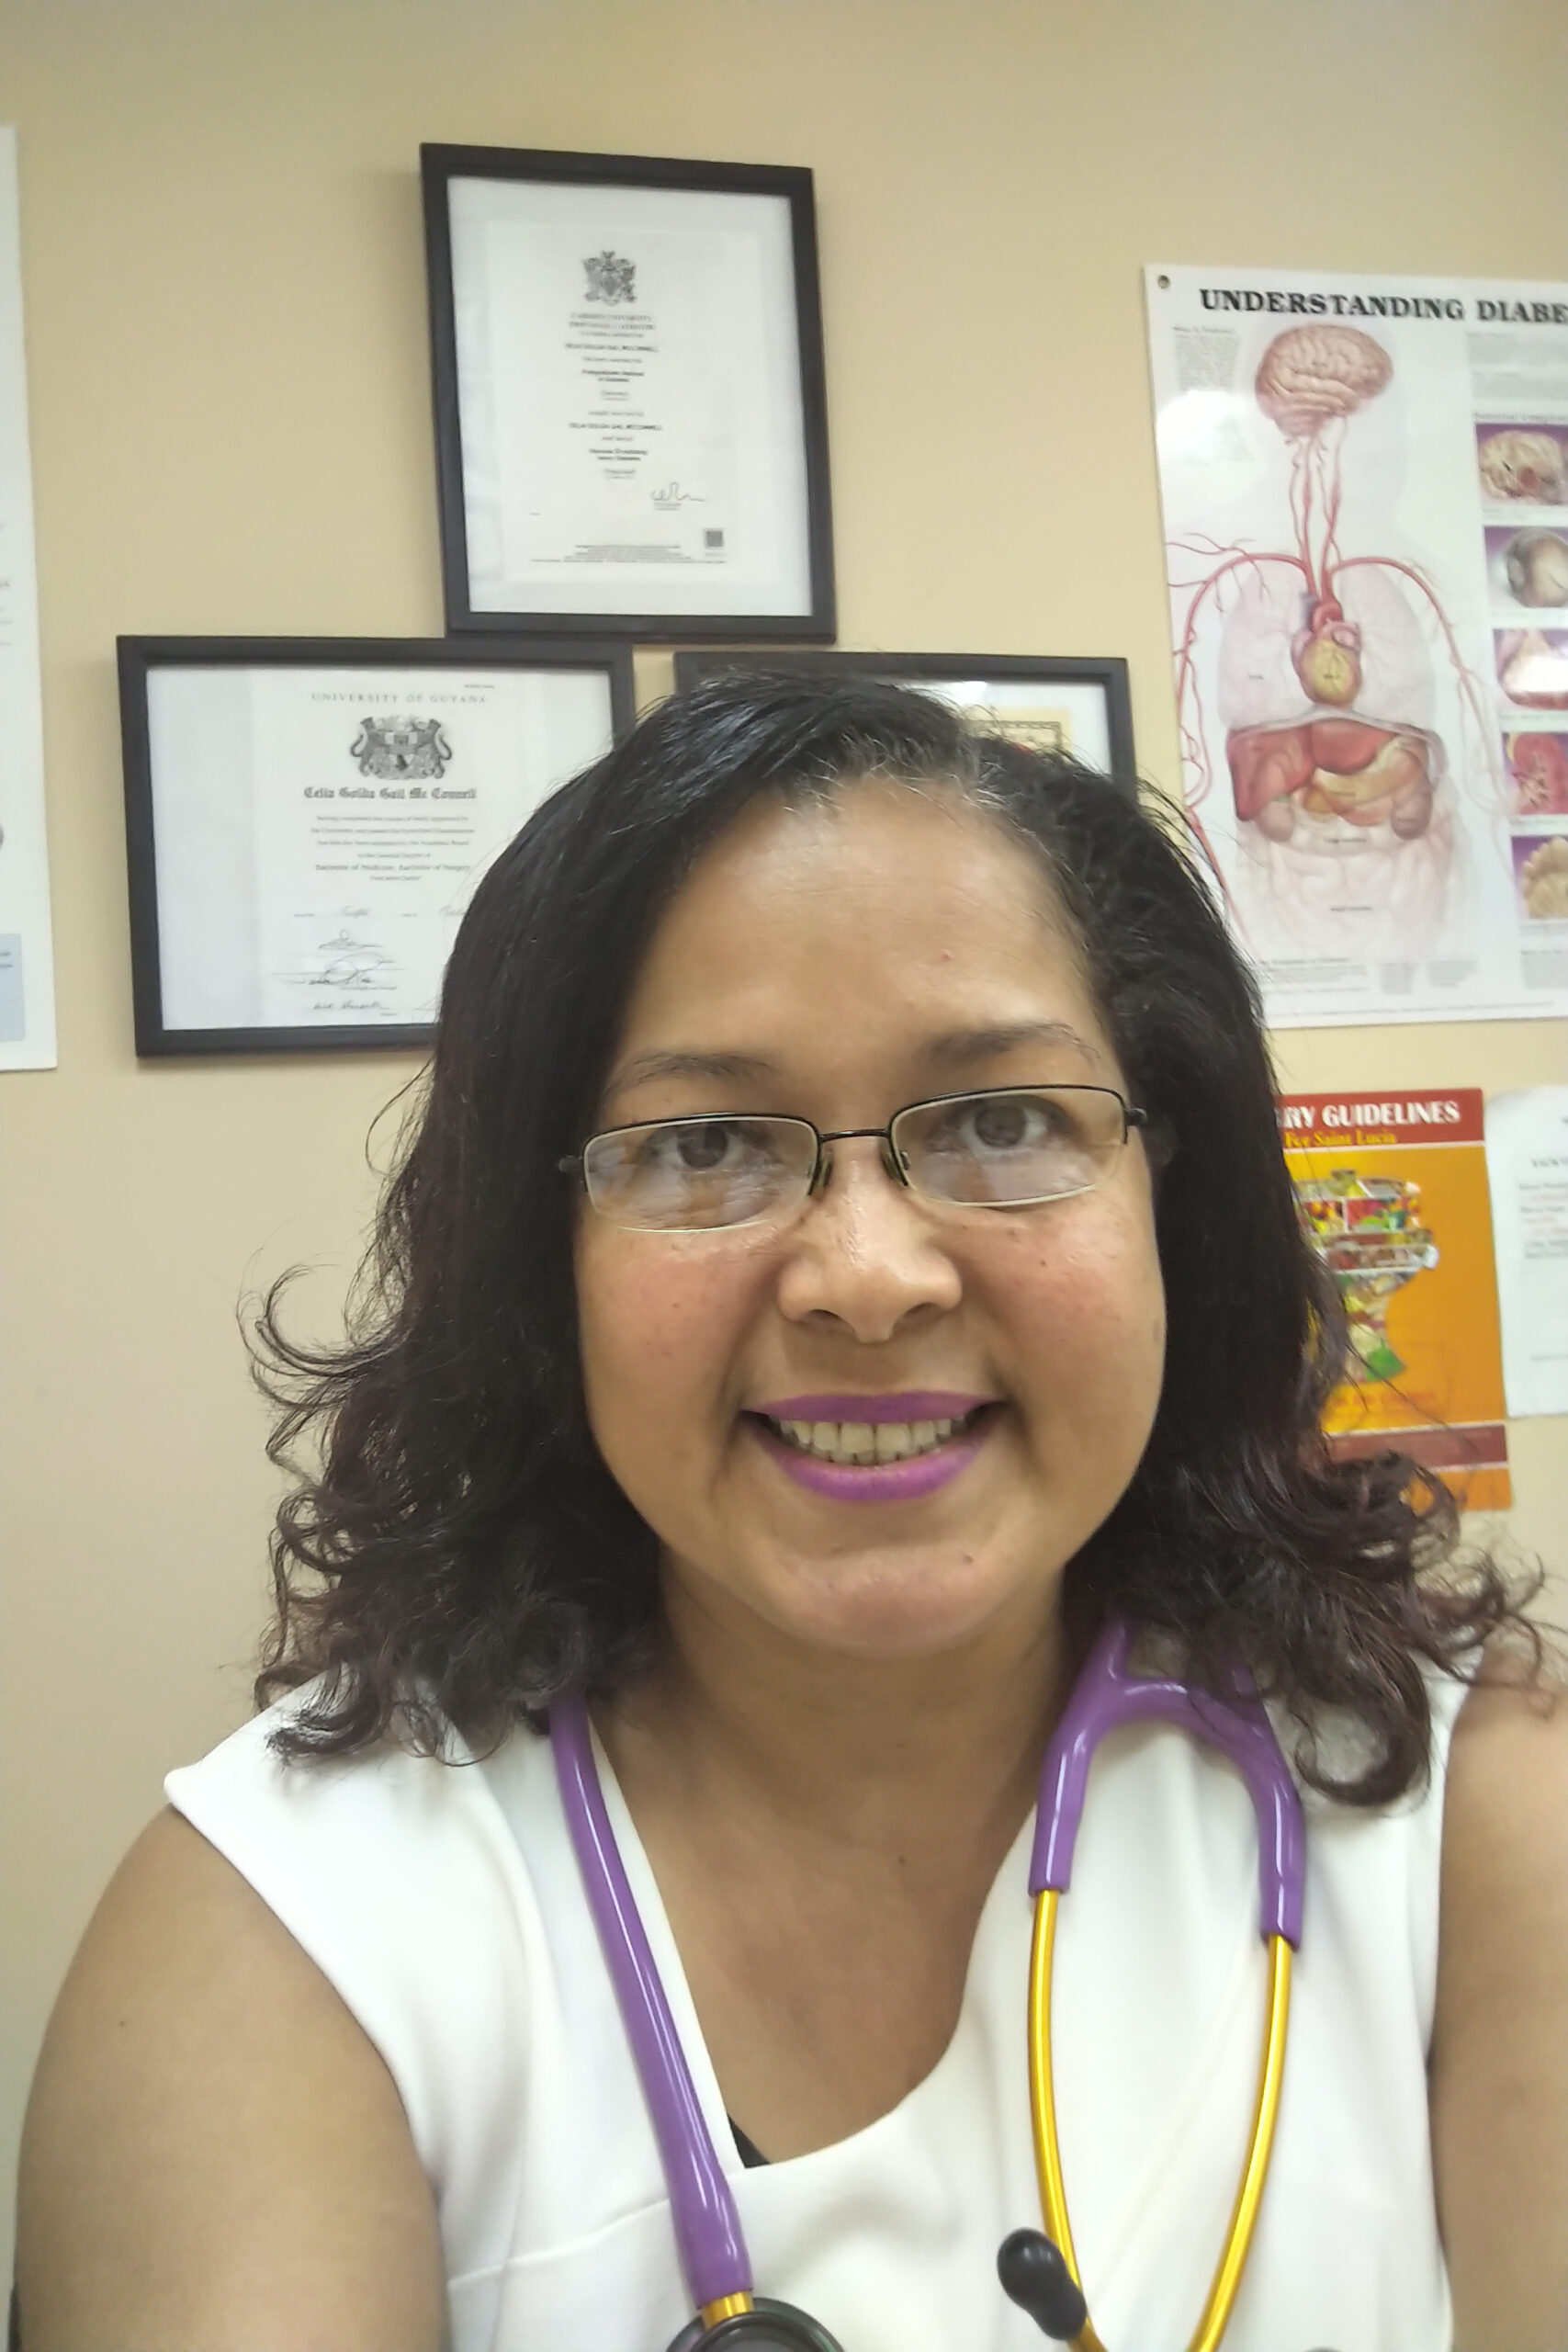 Practicing at Her Own Private Clinic in St. Lucia, Dr. Celia McConnel is a Talented Guyanese